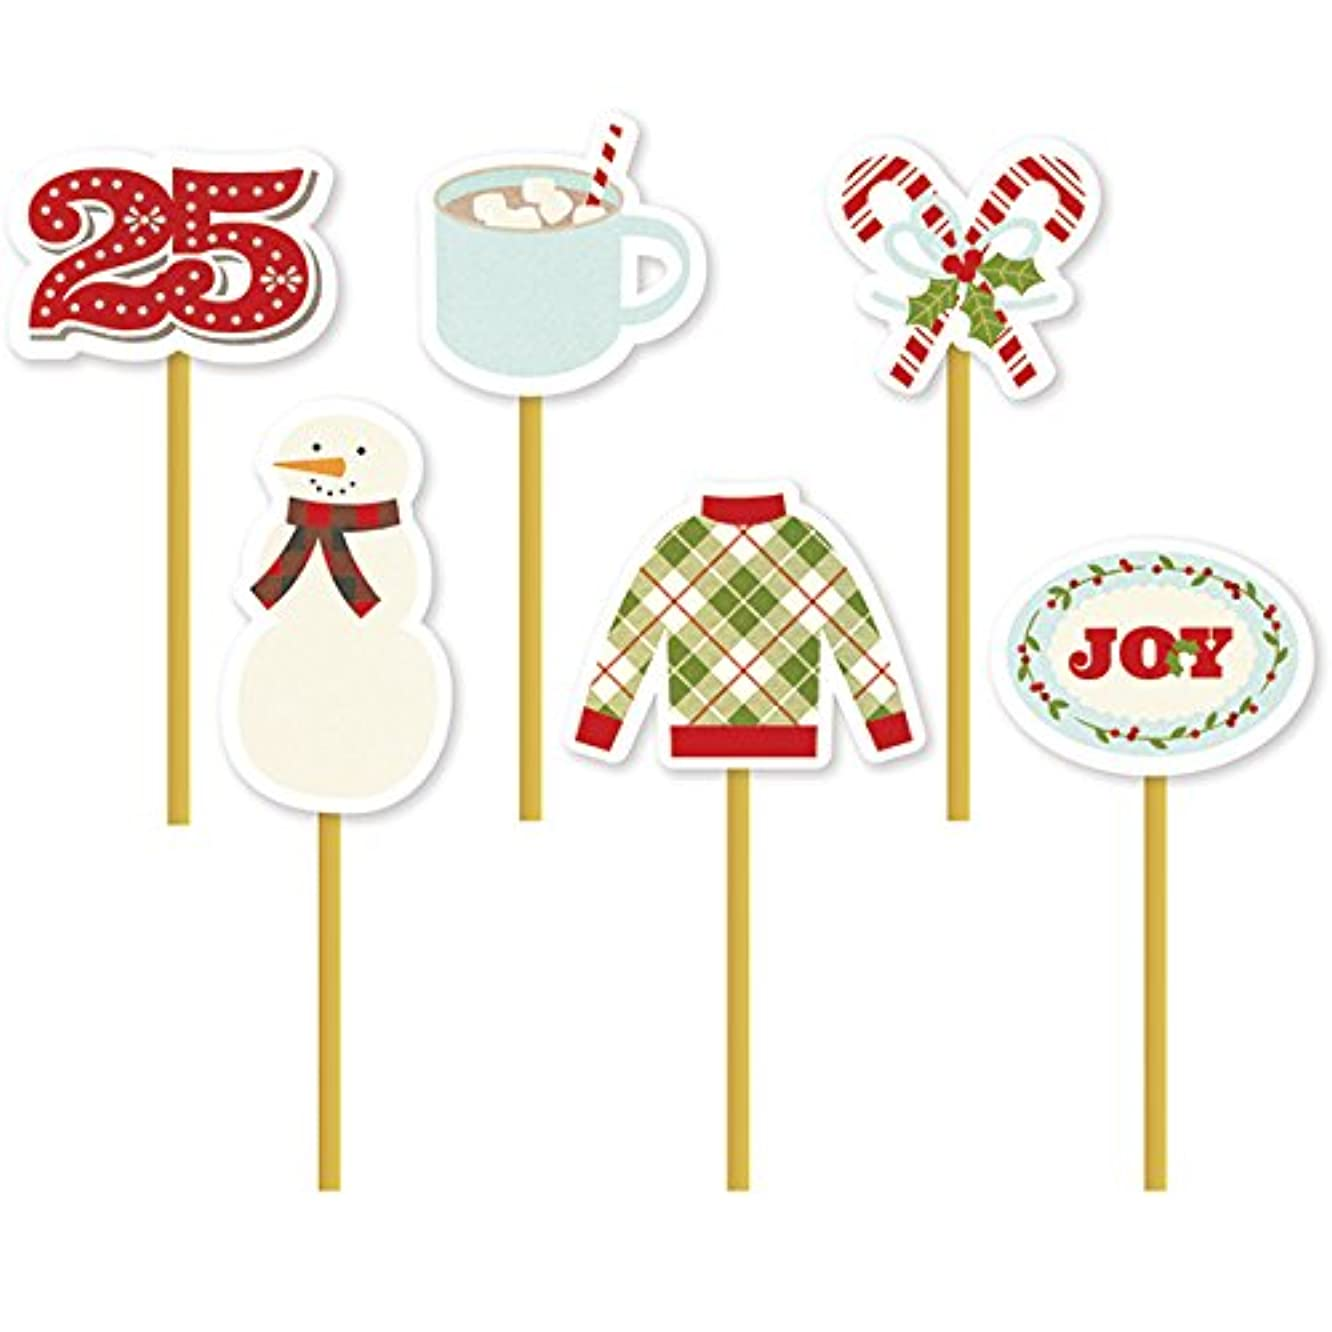 Simple Stories Classic Christmas Decorative Clips, 6 Piece